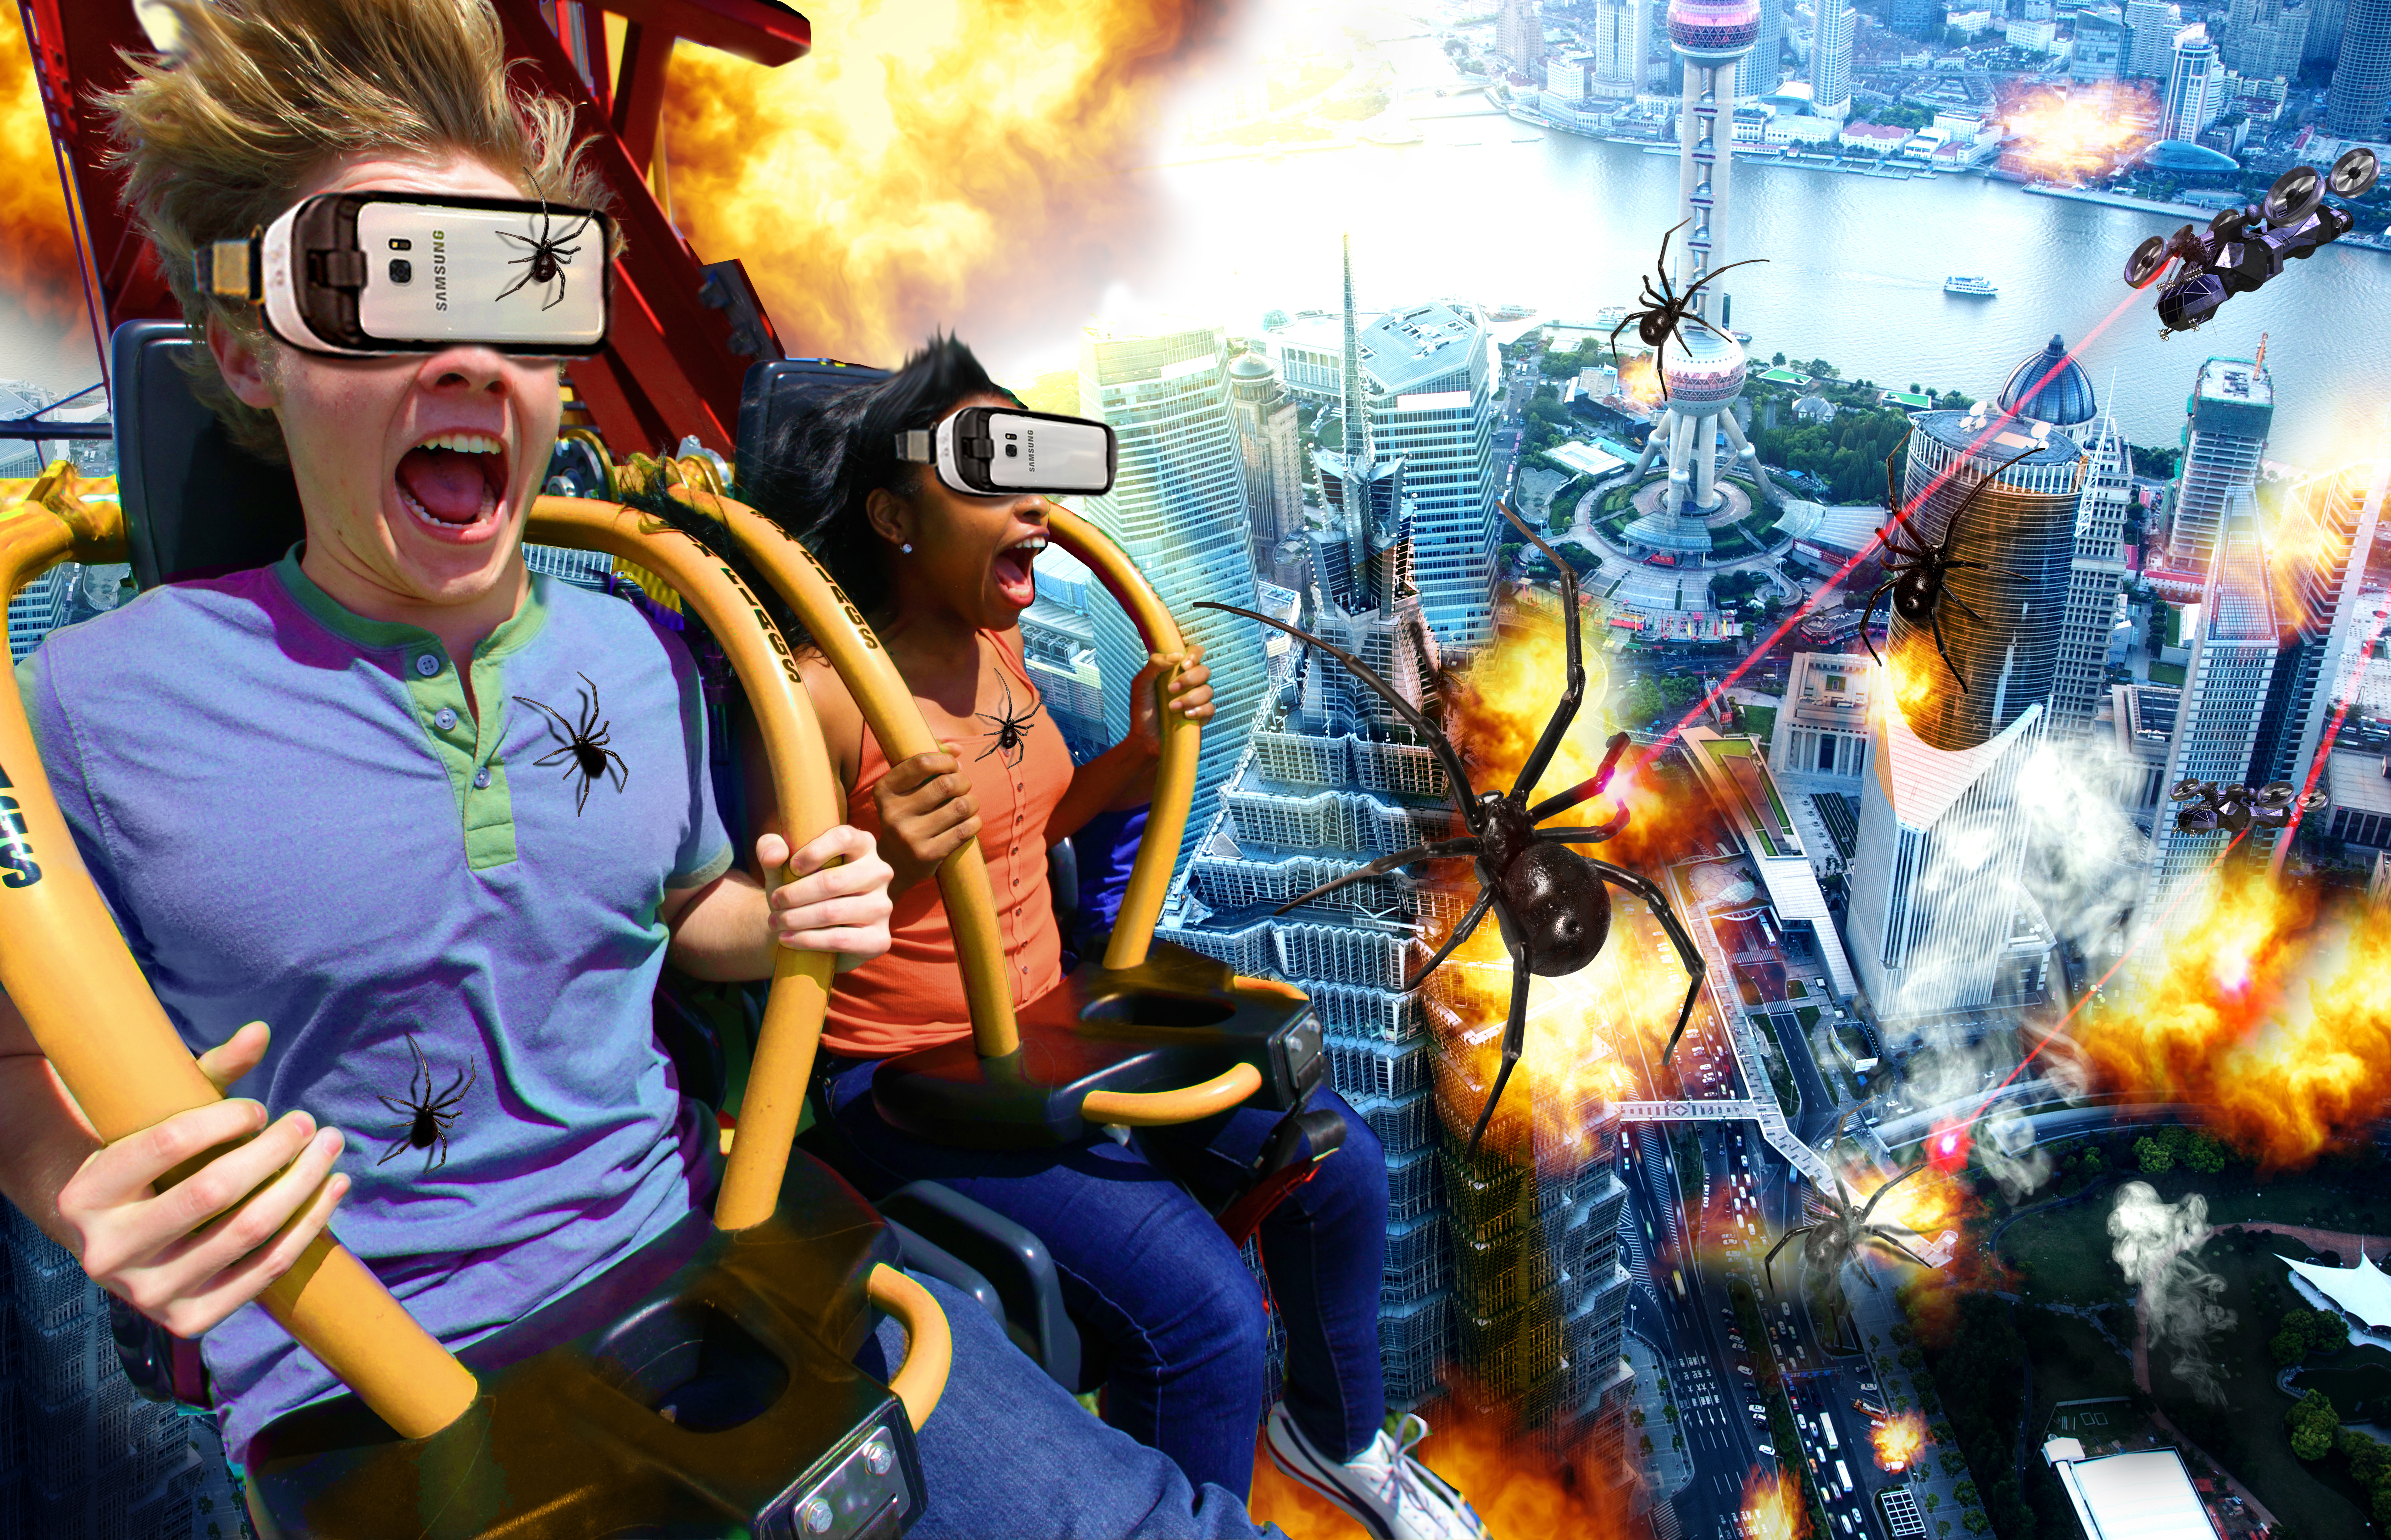 Drop of Doom VR, North America's first-ever permanent drop tower VR attraction, will debut at Six Flags Over Georgia near Atlanta on March 11. This new VR experience is a thrilling, immersive encounter with giant, mutant spiders and will open as part of the park's 50th anniversary season. (Photo: Six Flags Over Georgia)